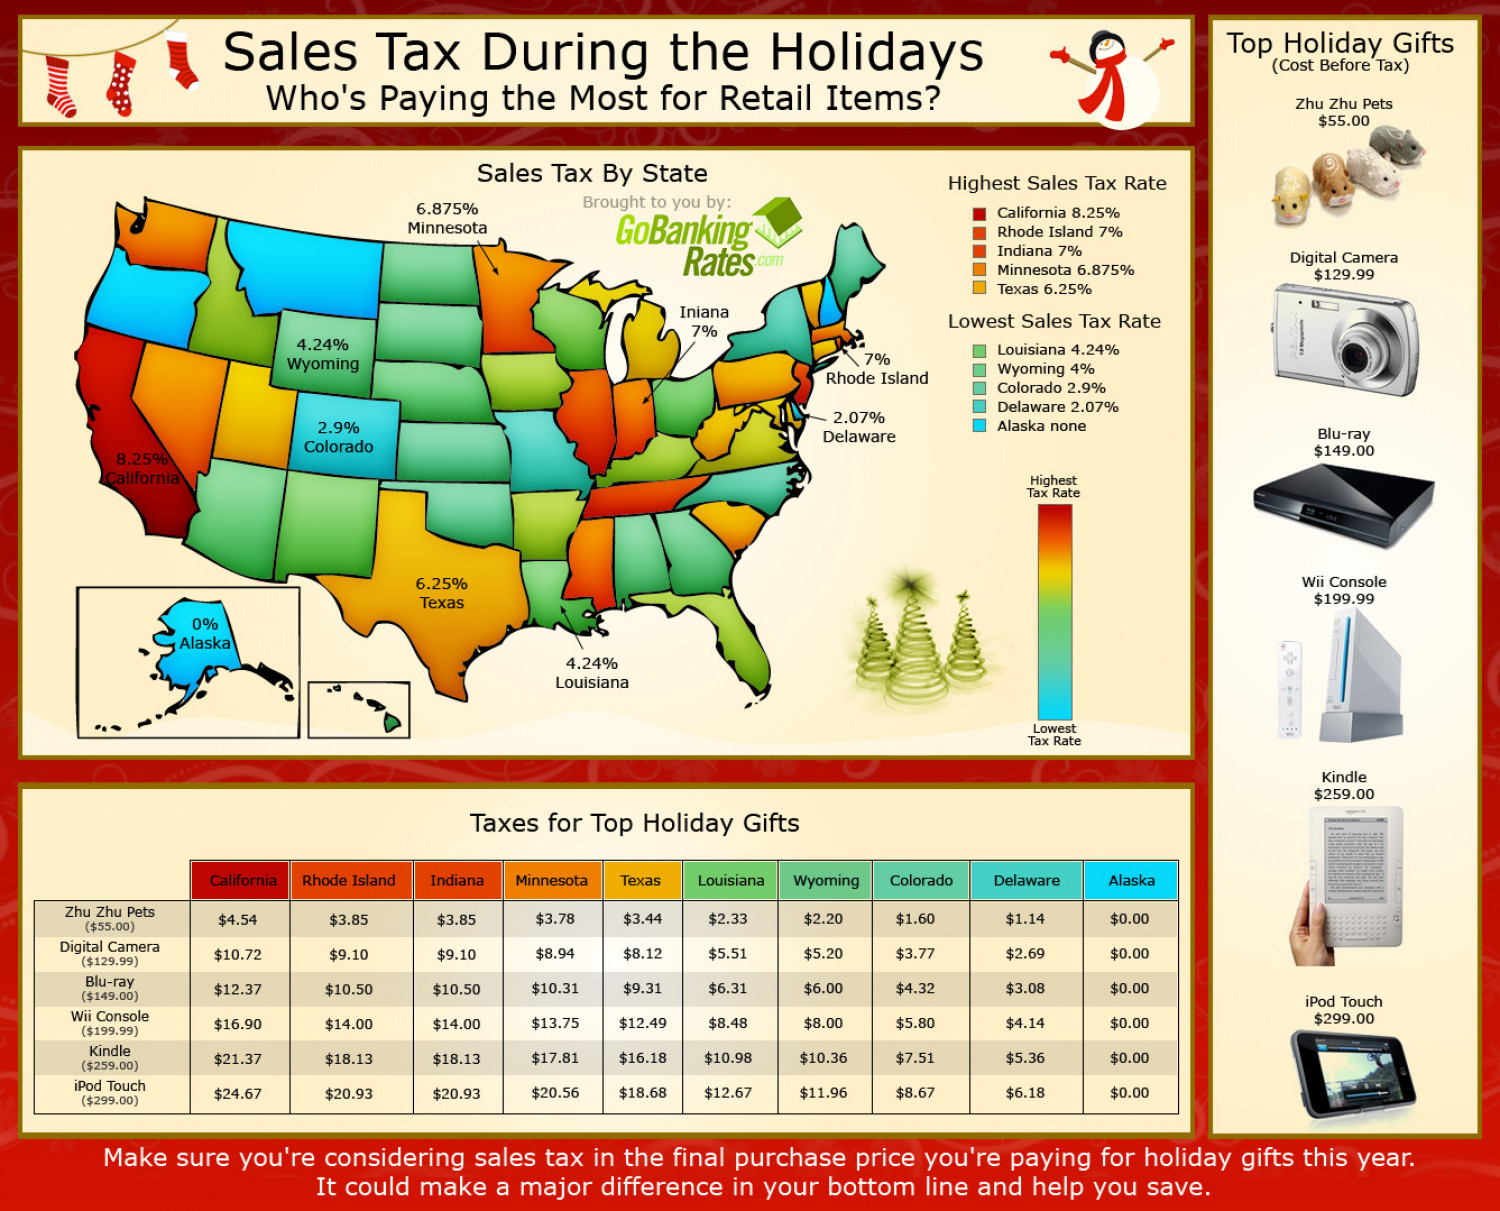 Sales Tax During the Holidays Infographic